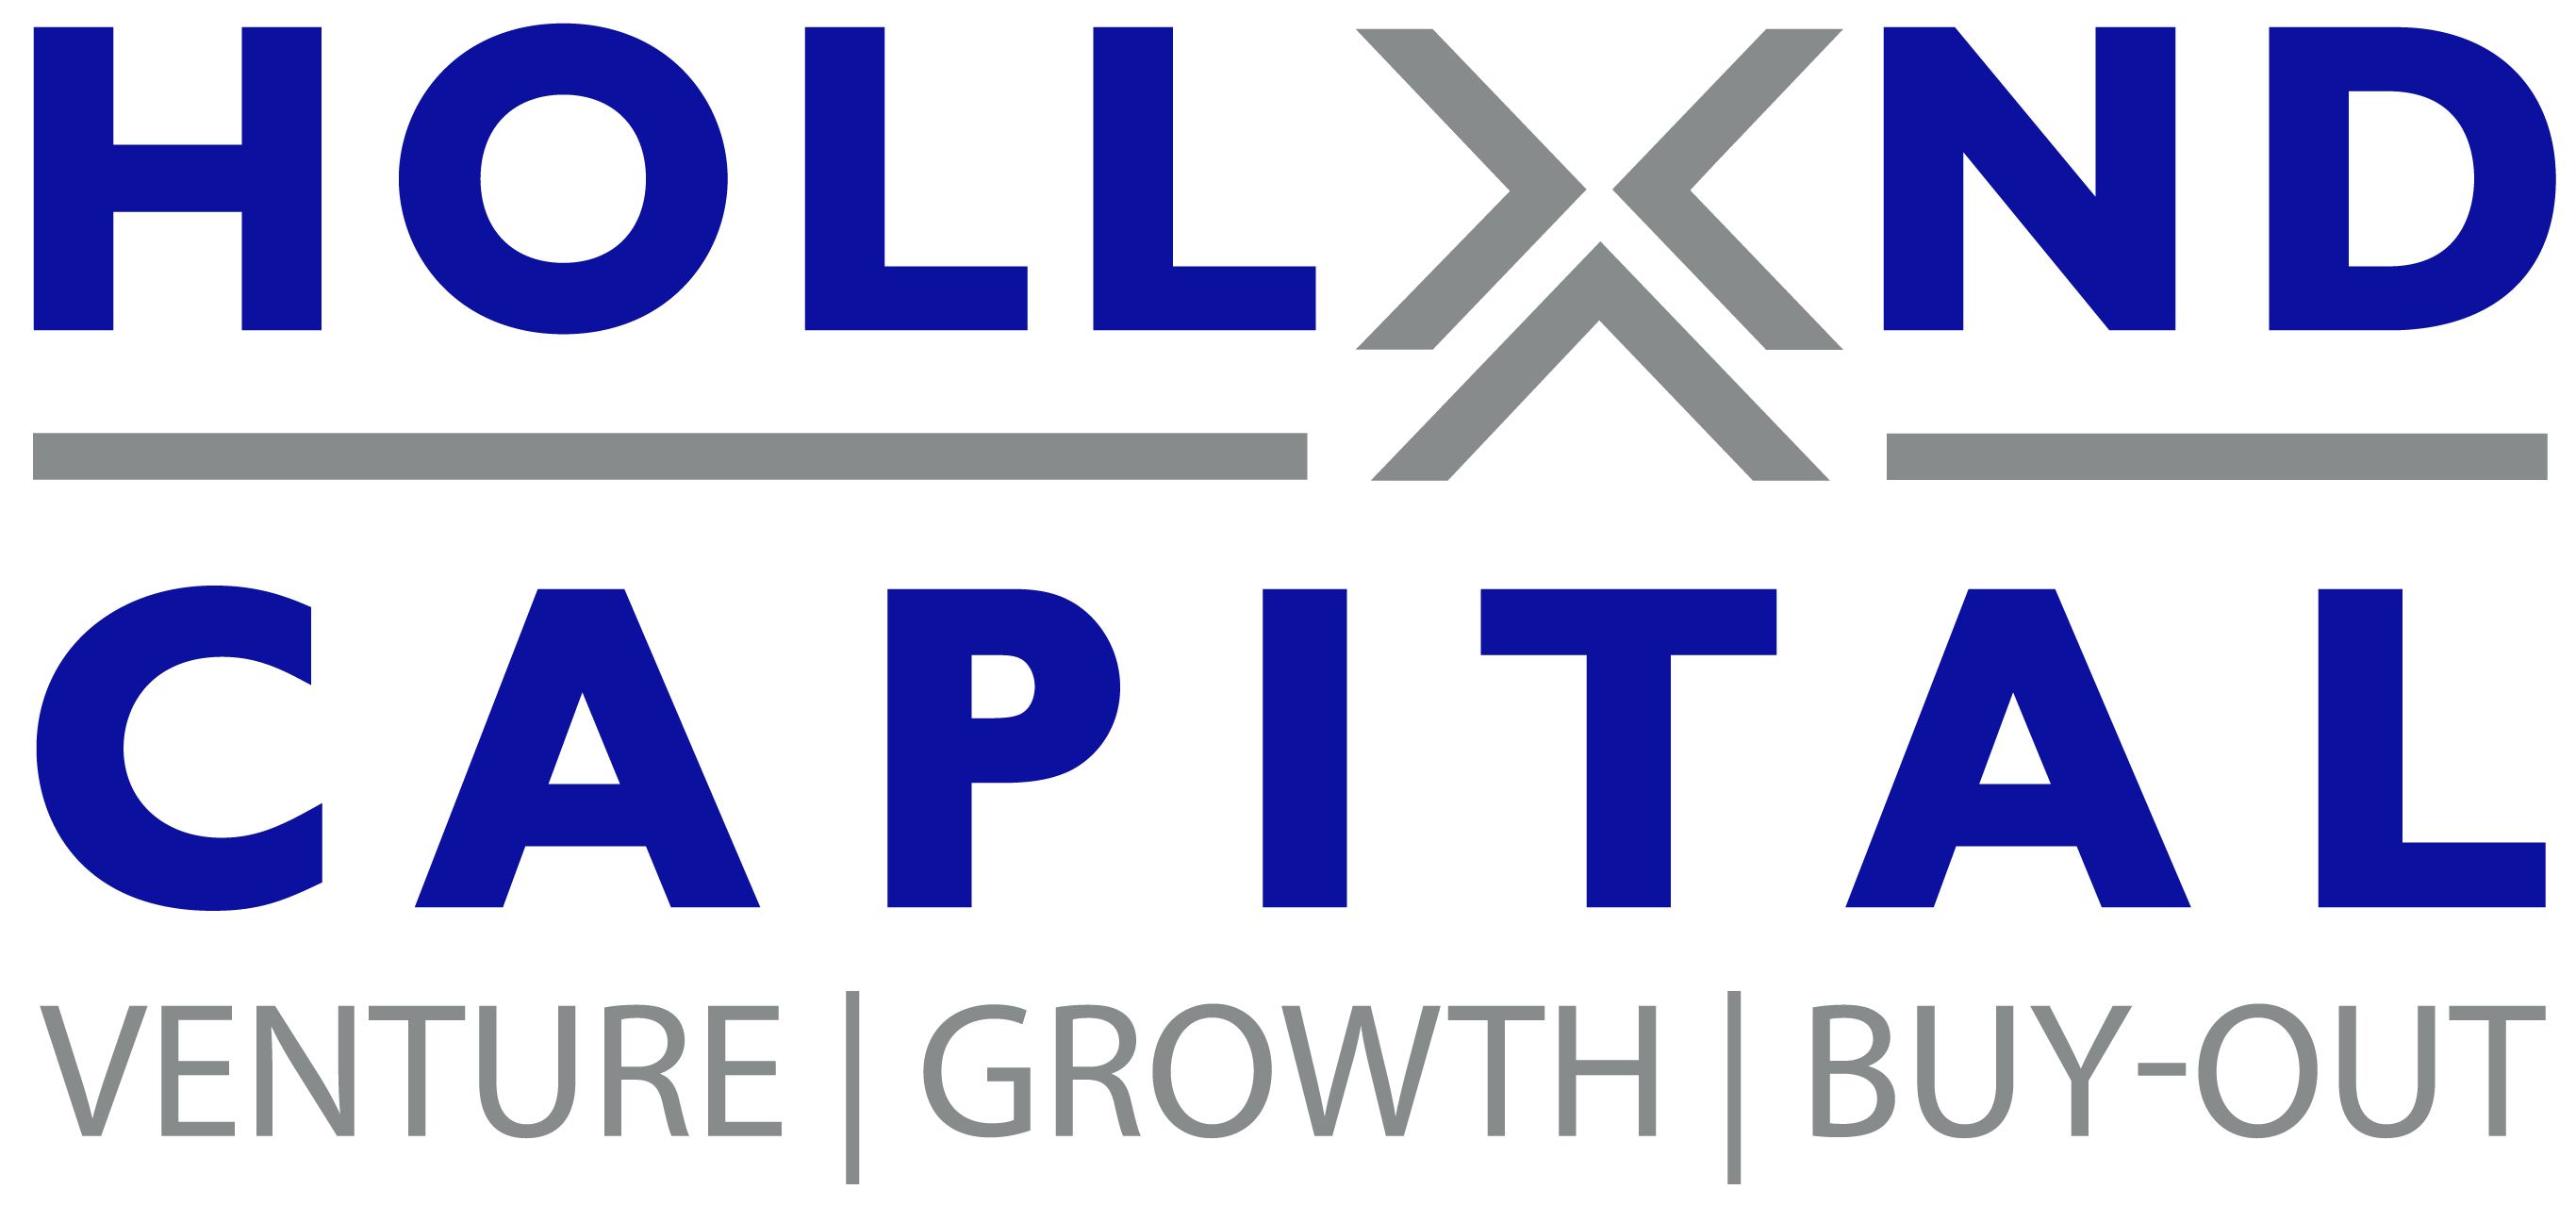 Holland-capital-logo-email-course